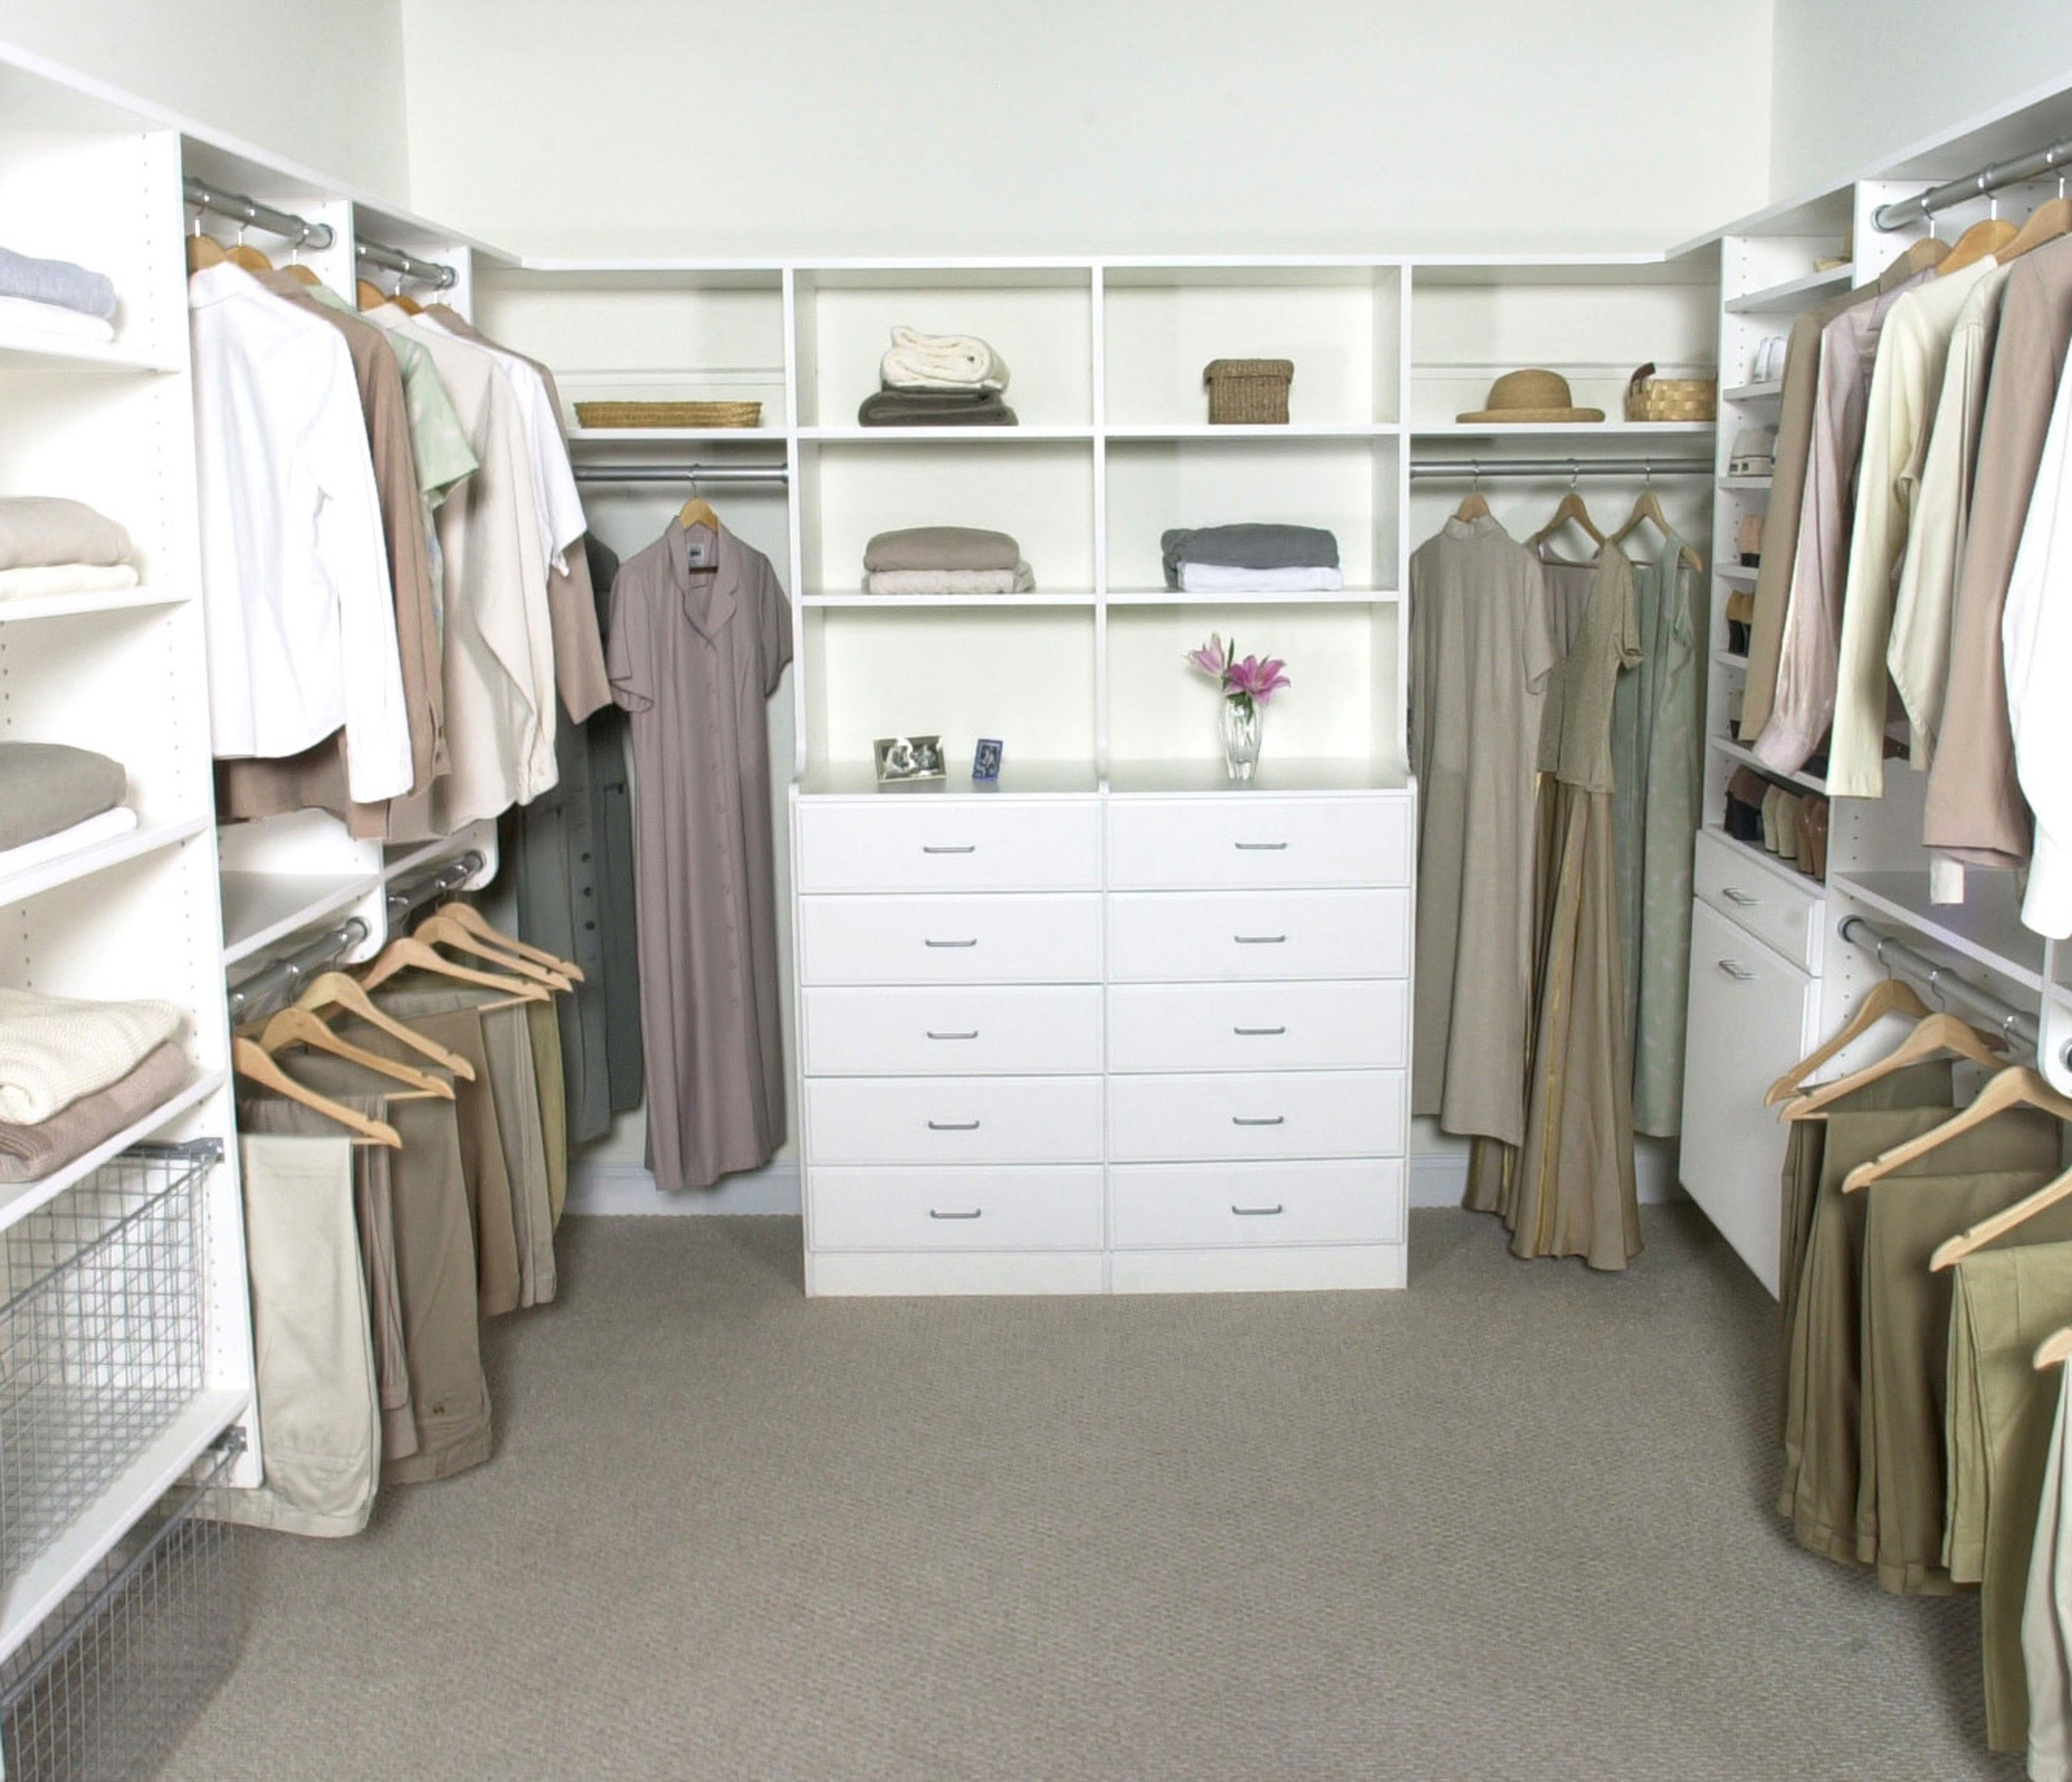 Best Kitchen Gallery: Cosy Master Bedroom Walk In Closet Designs Perfect Decoration Ideas of Walk In Bedroom Closet Designs  on rachelxblog.com